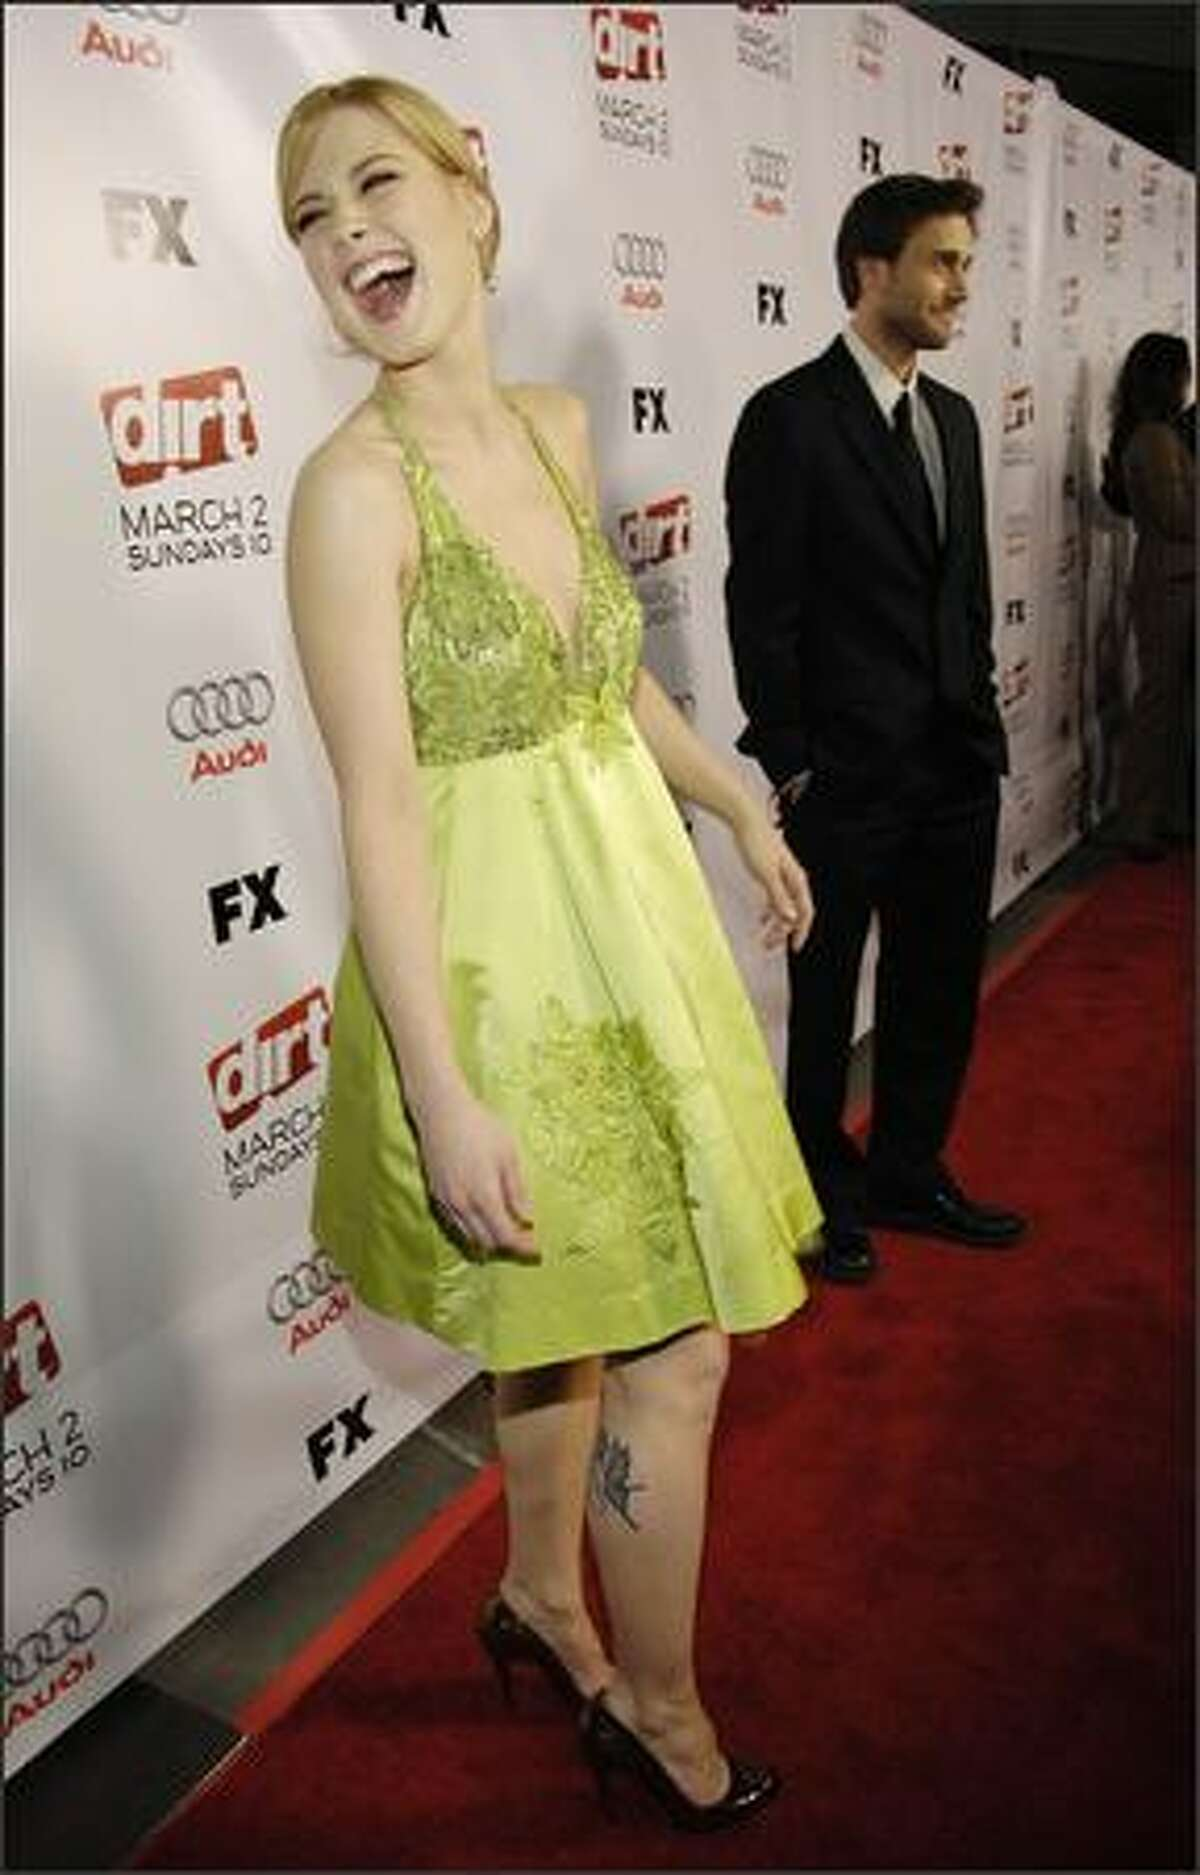 """""""Dirt"""" cast members Alexandra Breckenridge, left, and Ryan Eggold arrive at the season two premiere screening of the FX show, in Los Angeles, Thursday. (AP Photo/Chris Pizzello)"""